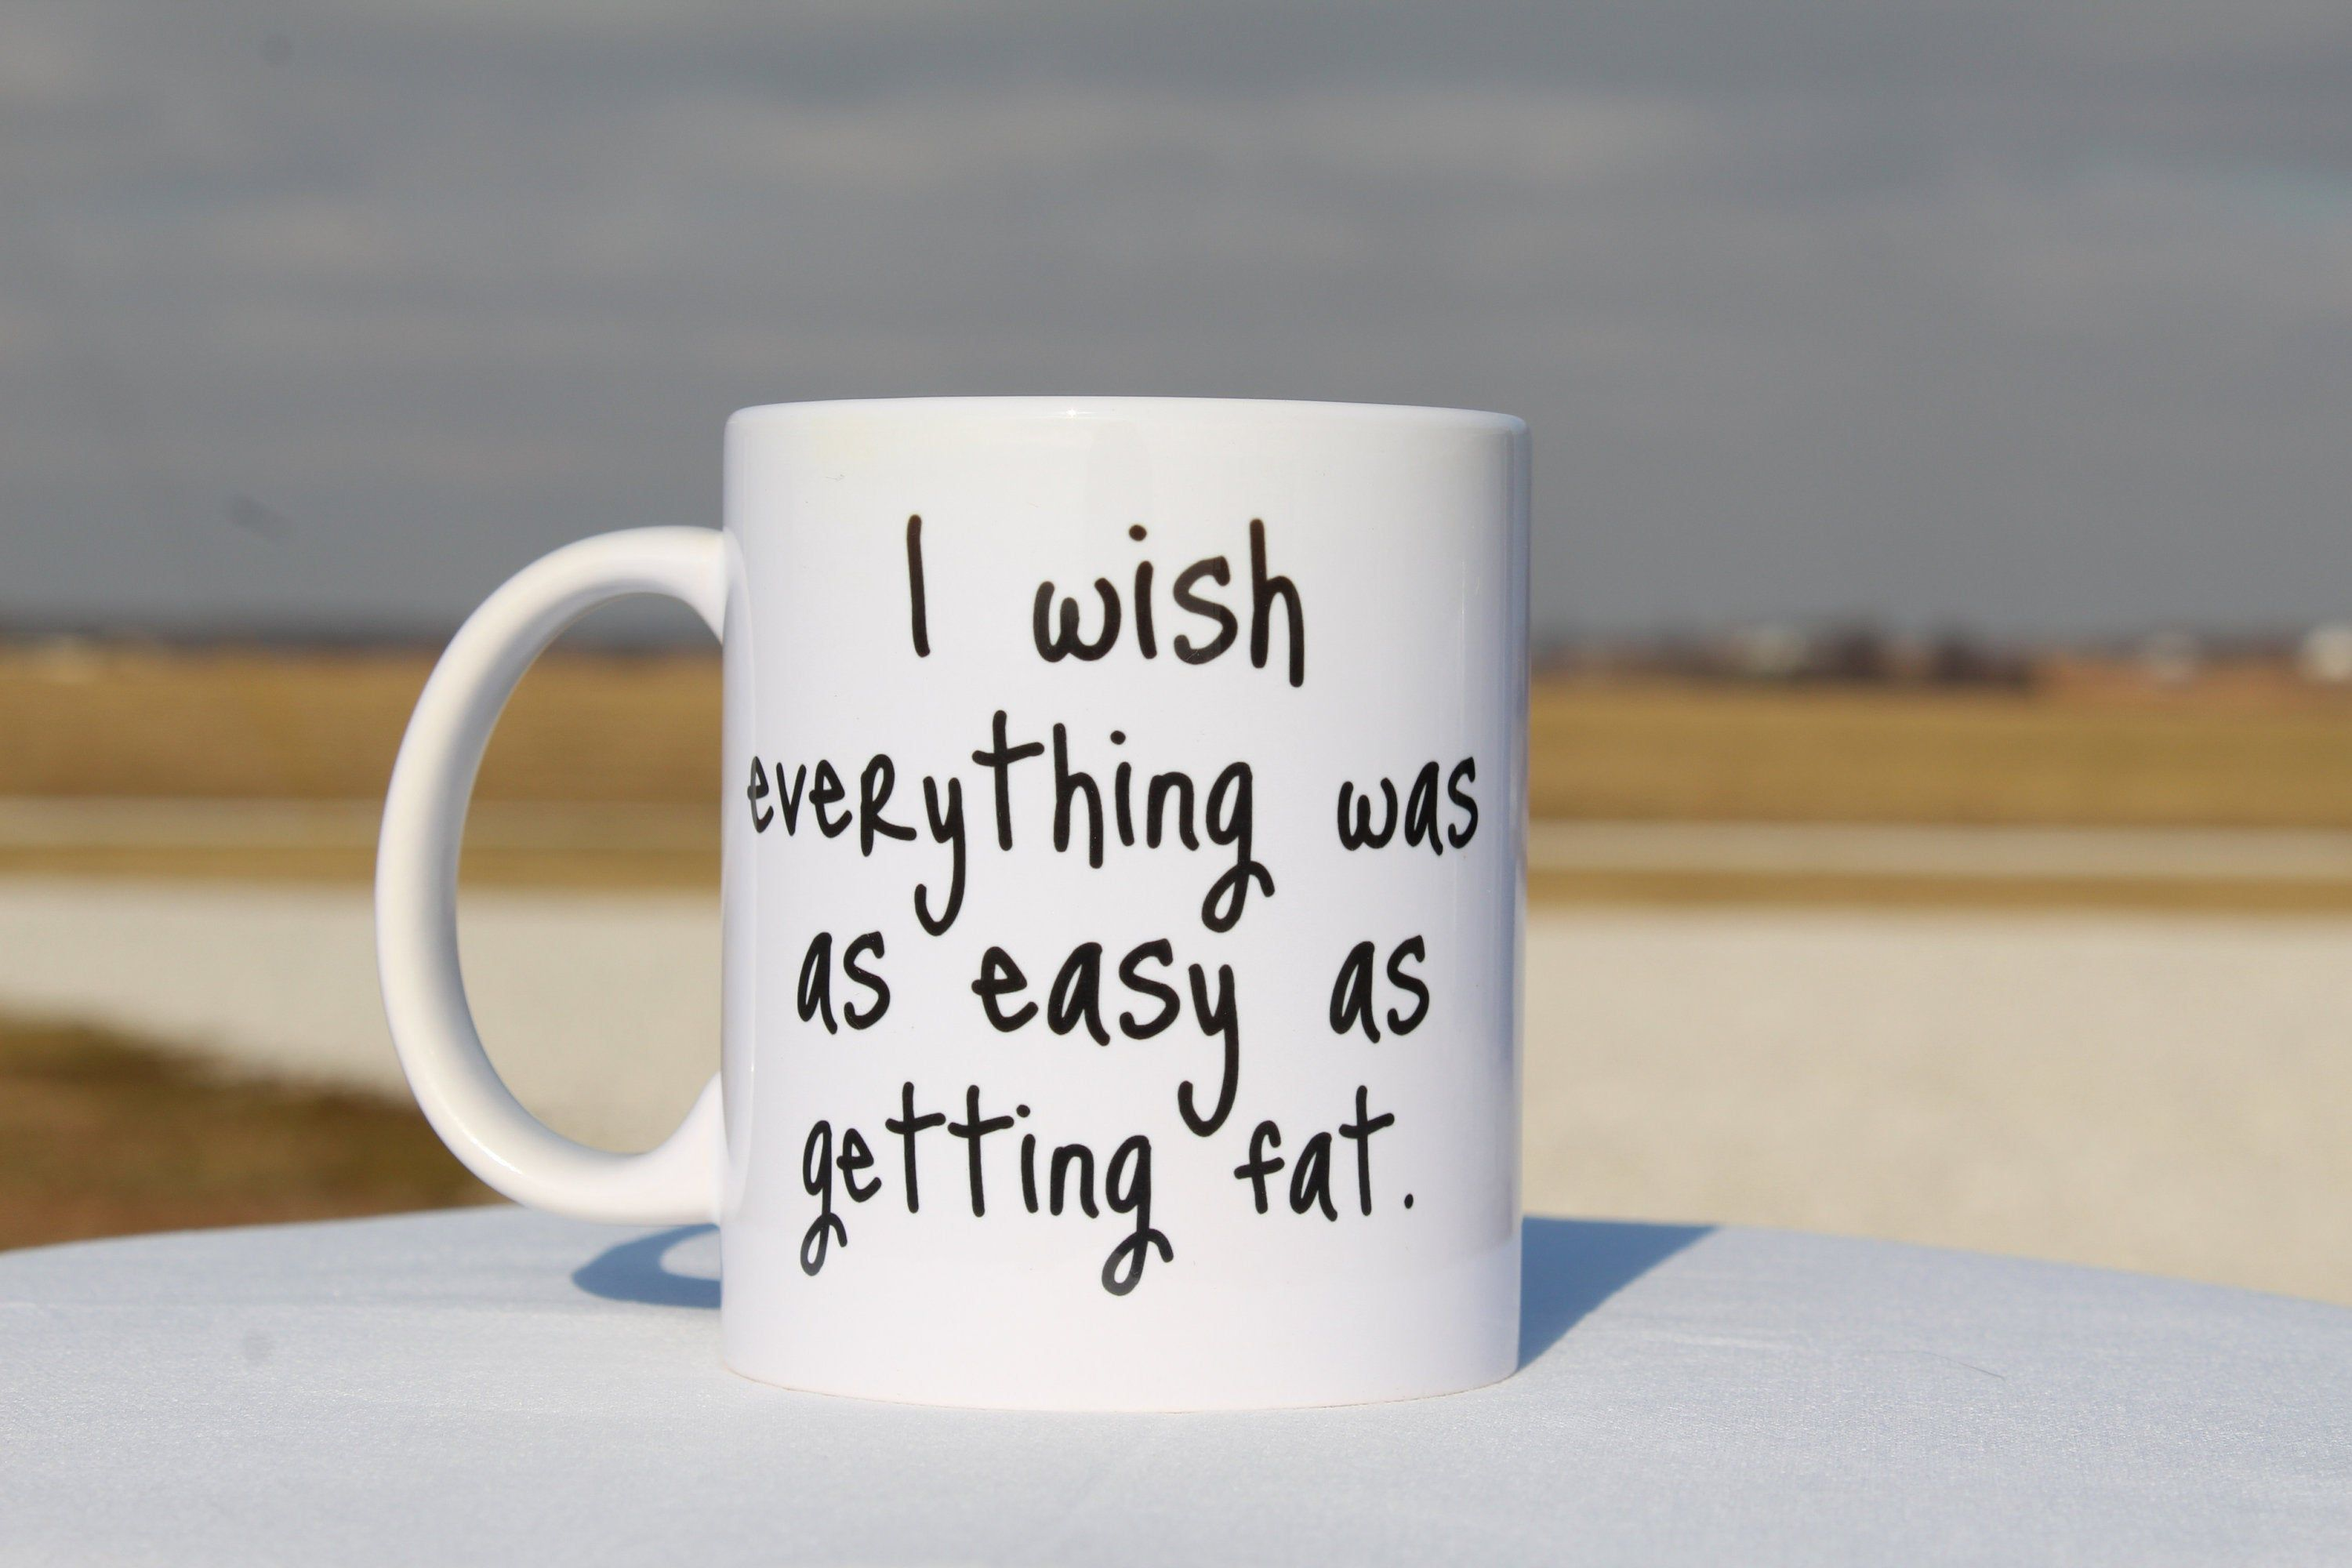 Funny Coffee Mugs,Funny Coffee Cup,I Wish Everything Was as Easy as Getting Fat,Funny Coffee Mug Gift for Women,Funny Coffee Mug Work Gift